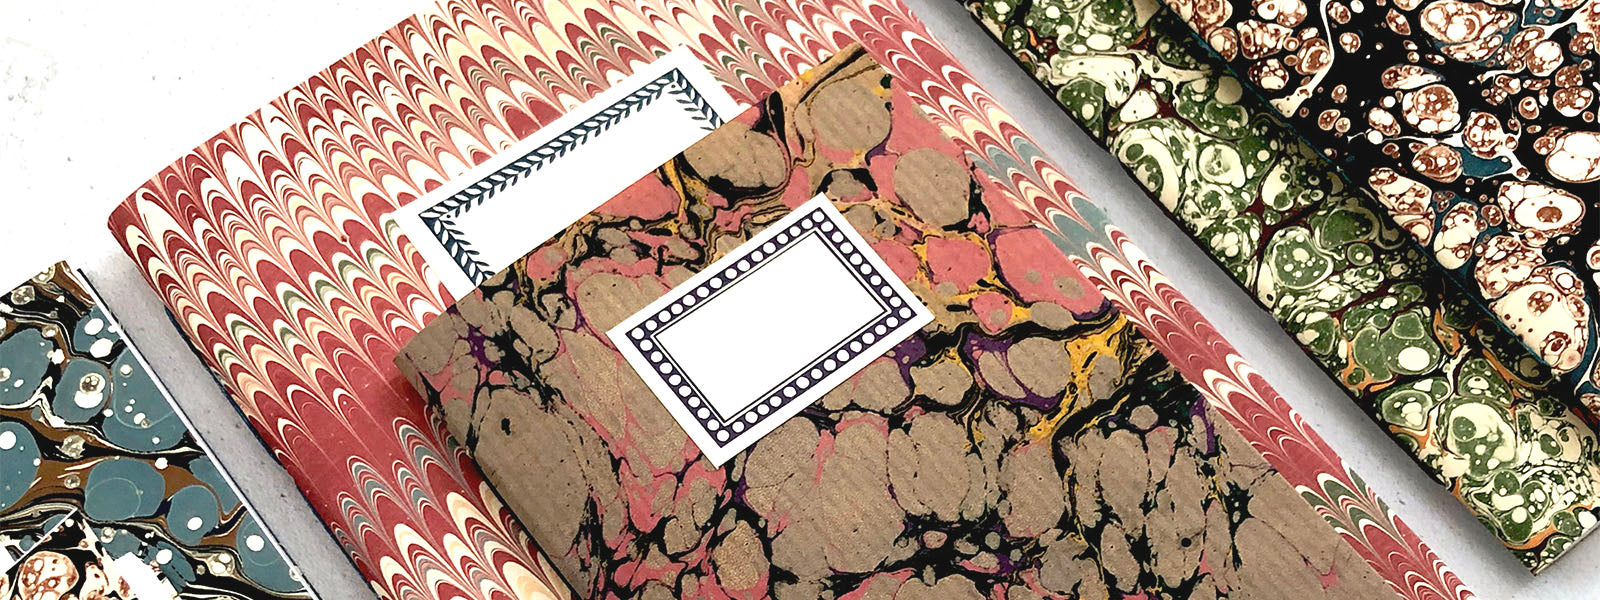 Marbled Notebooks with labels